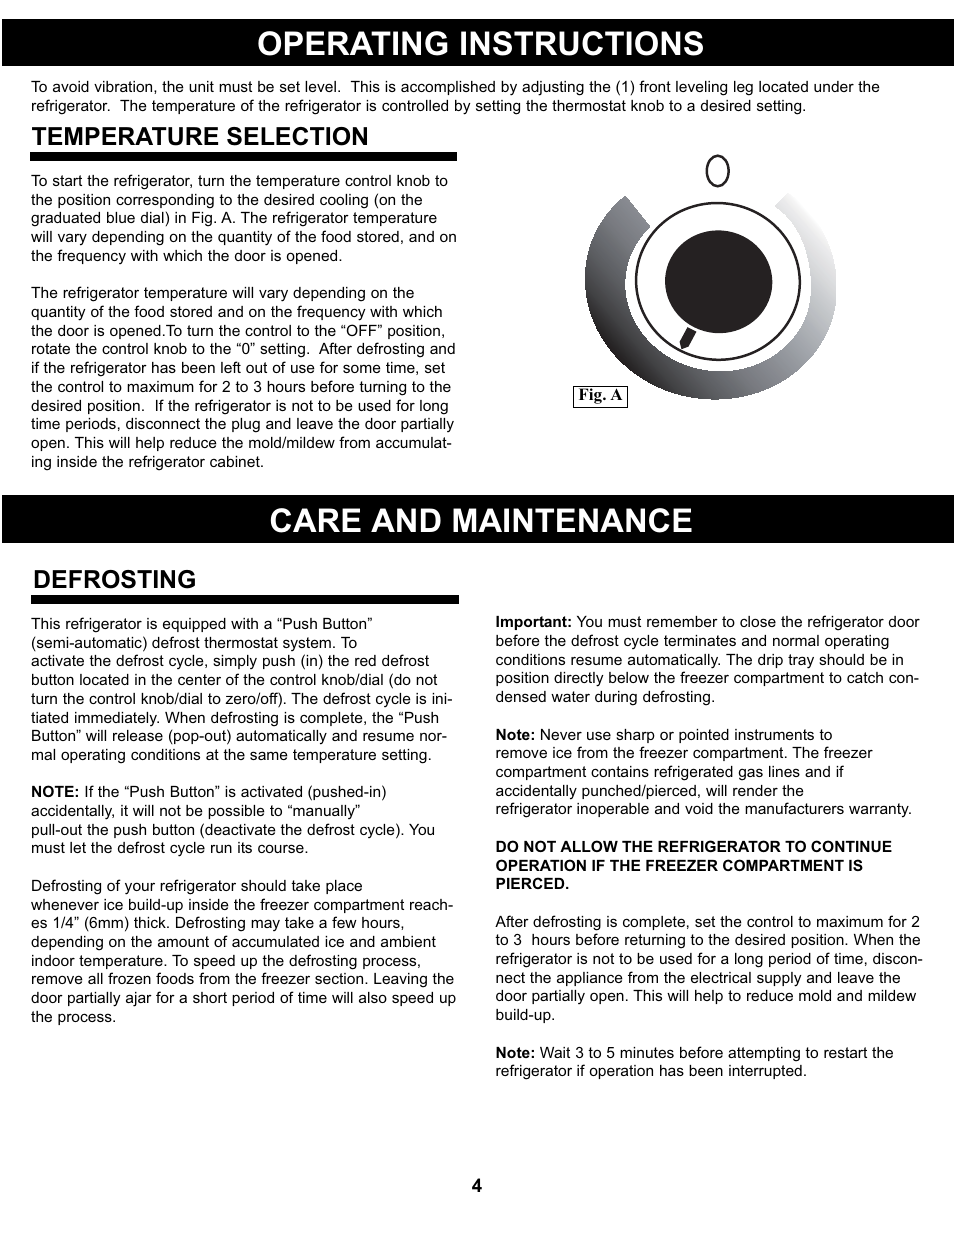 Operating instructions, Care and maintenance, Temperature